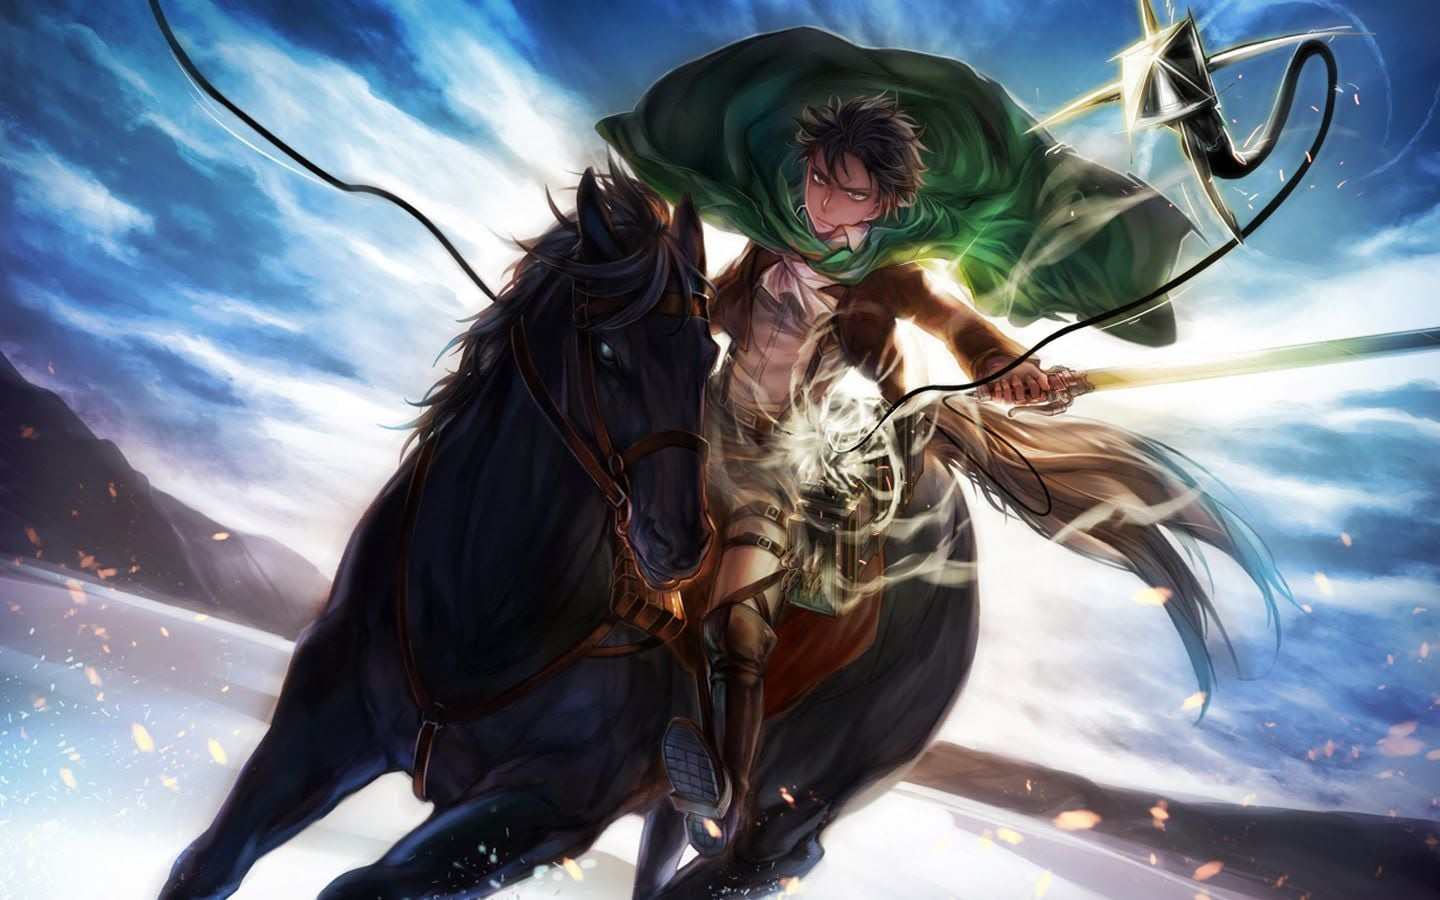 Image of Attack on Titan